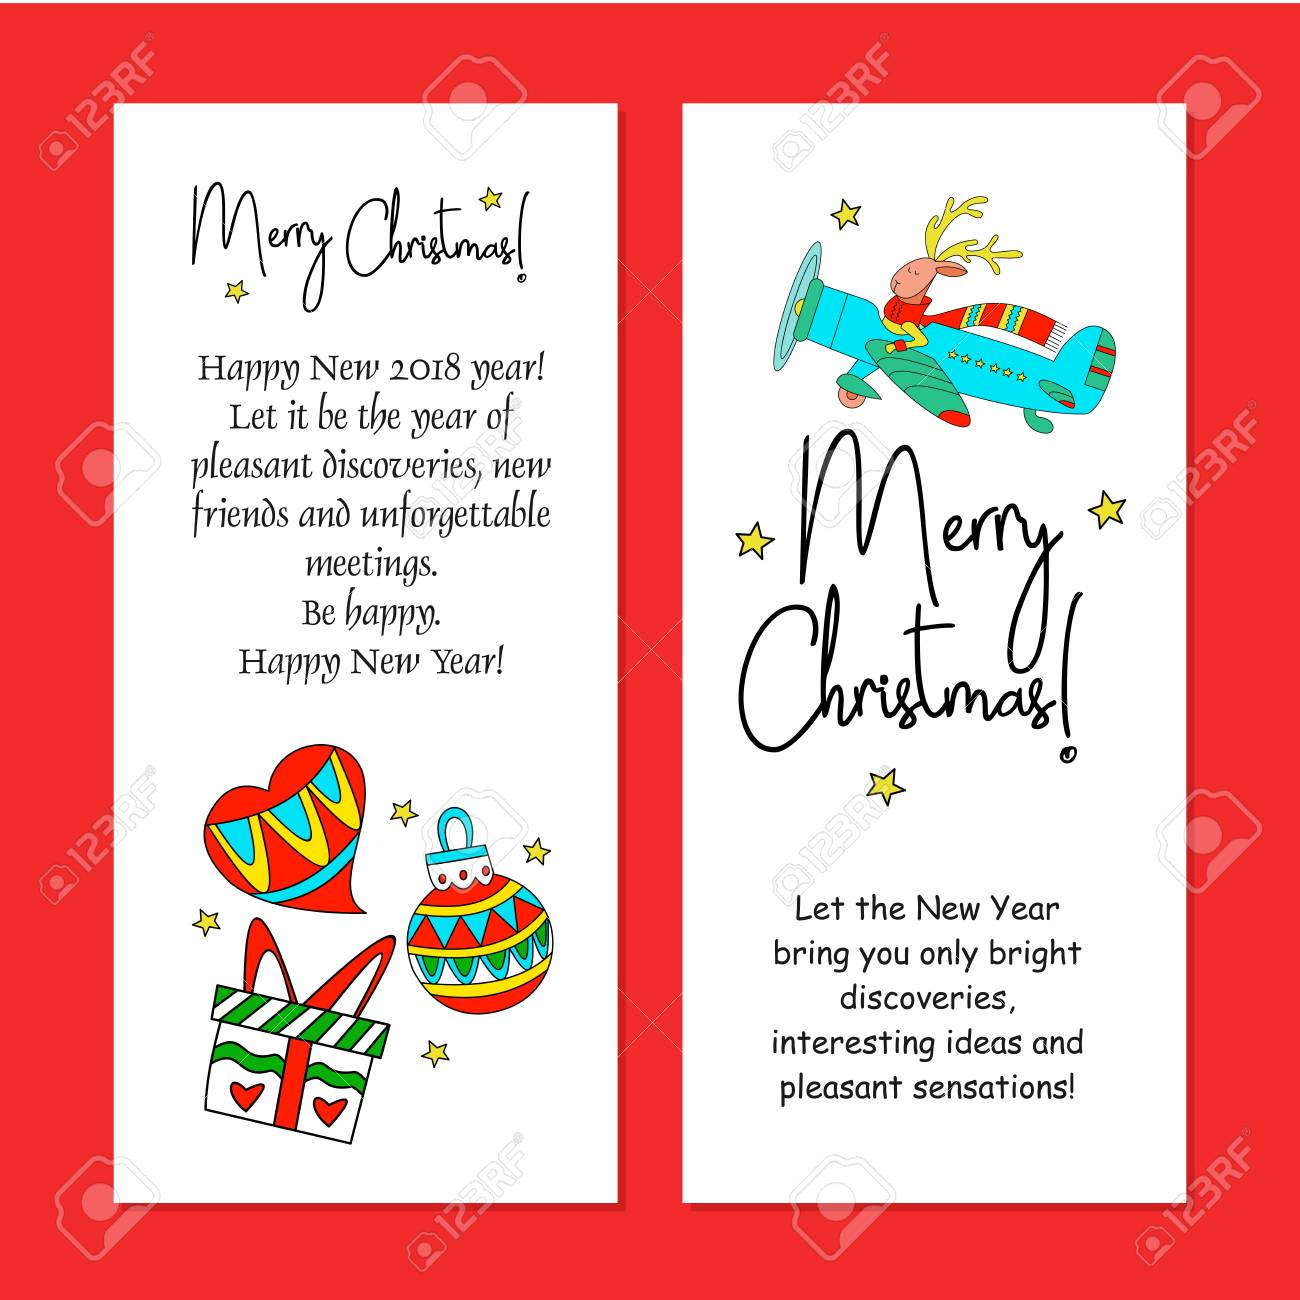 Merry Christmas Design Vector Illustration Royalty Free Cliparts